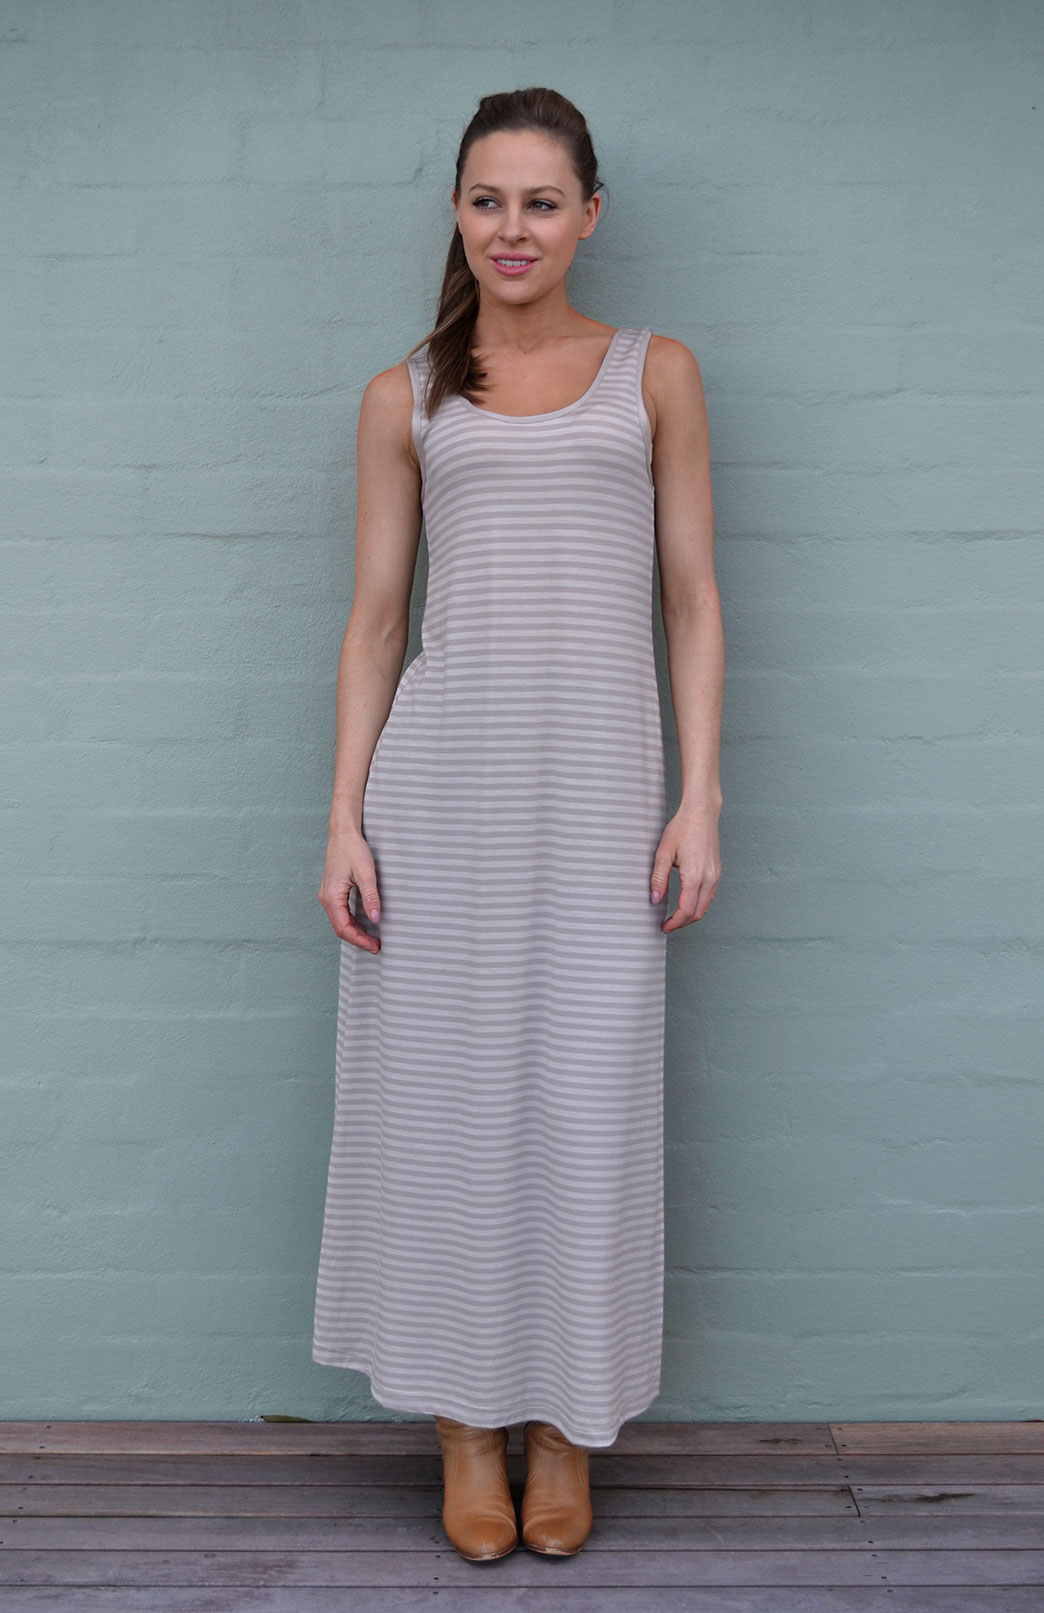 Patterned Maxi Dress - Smitten Merino Tasmania Australia